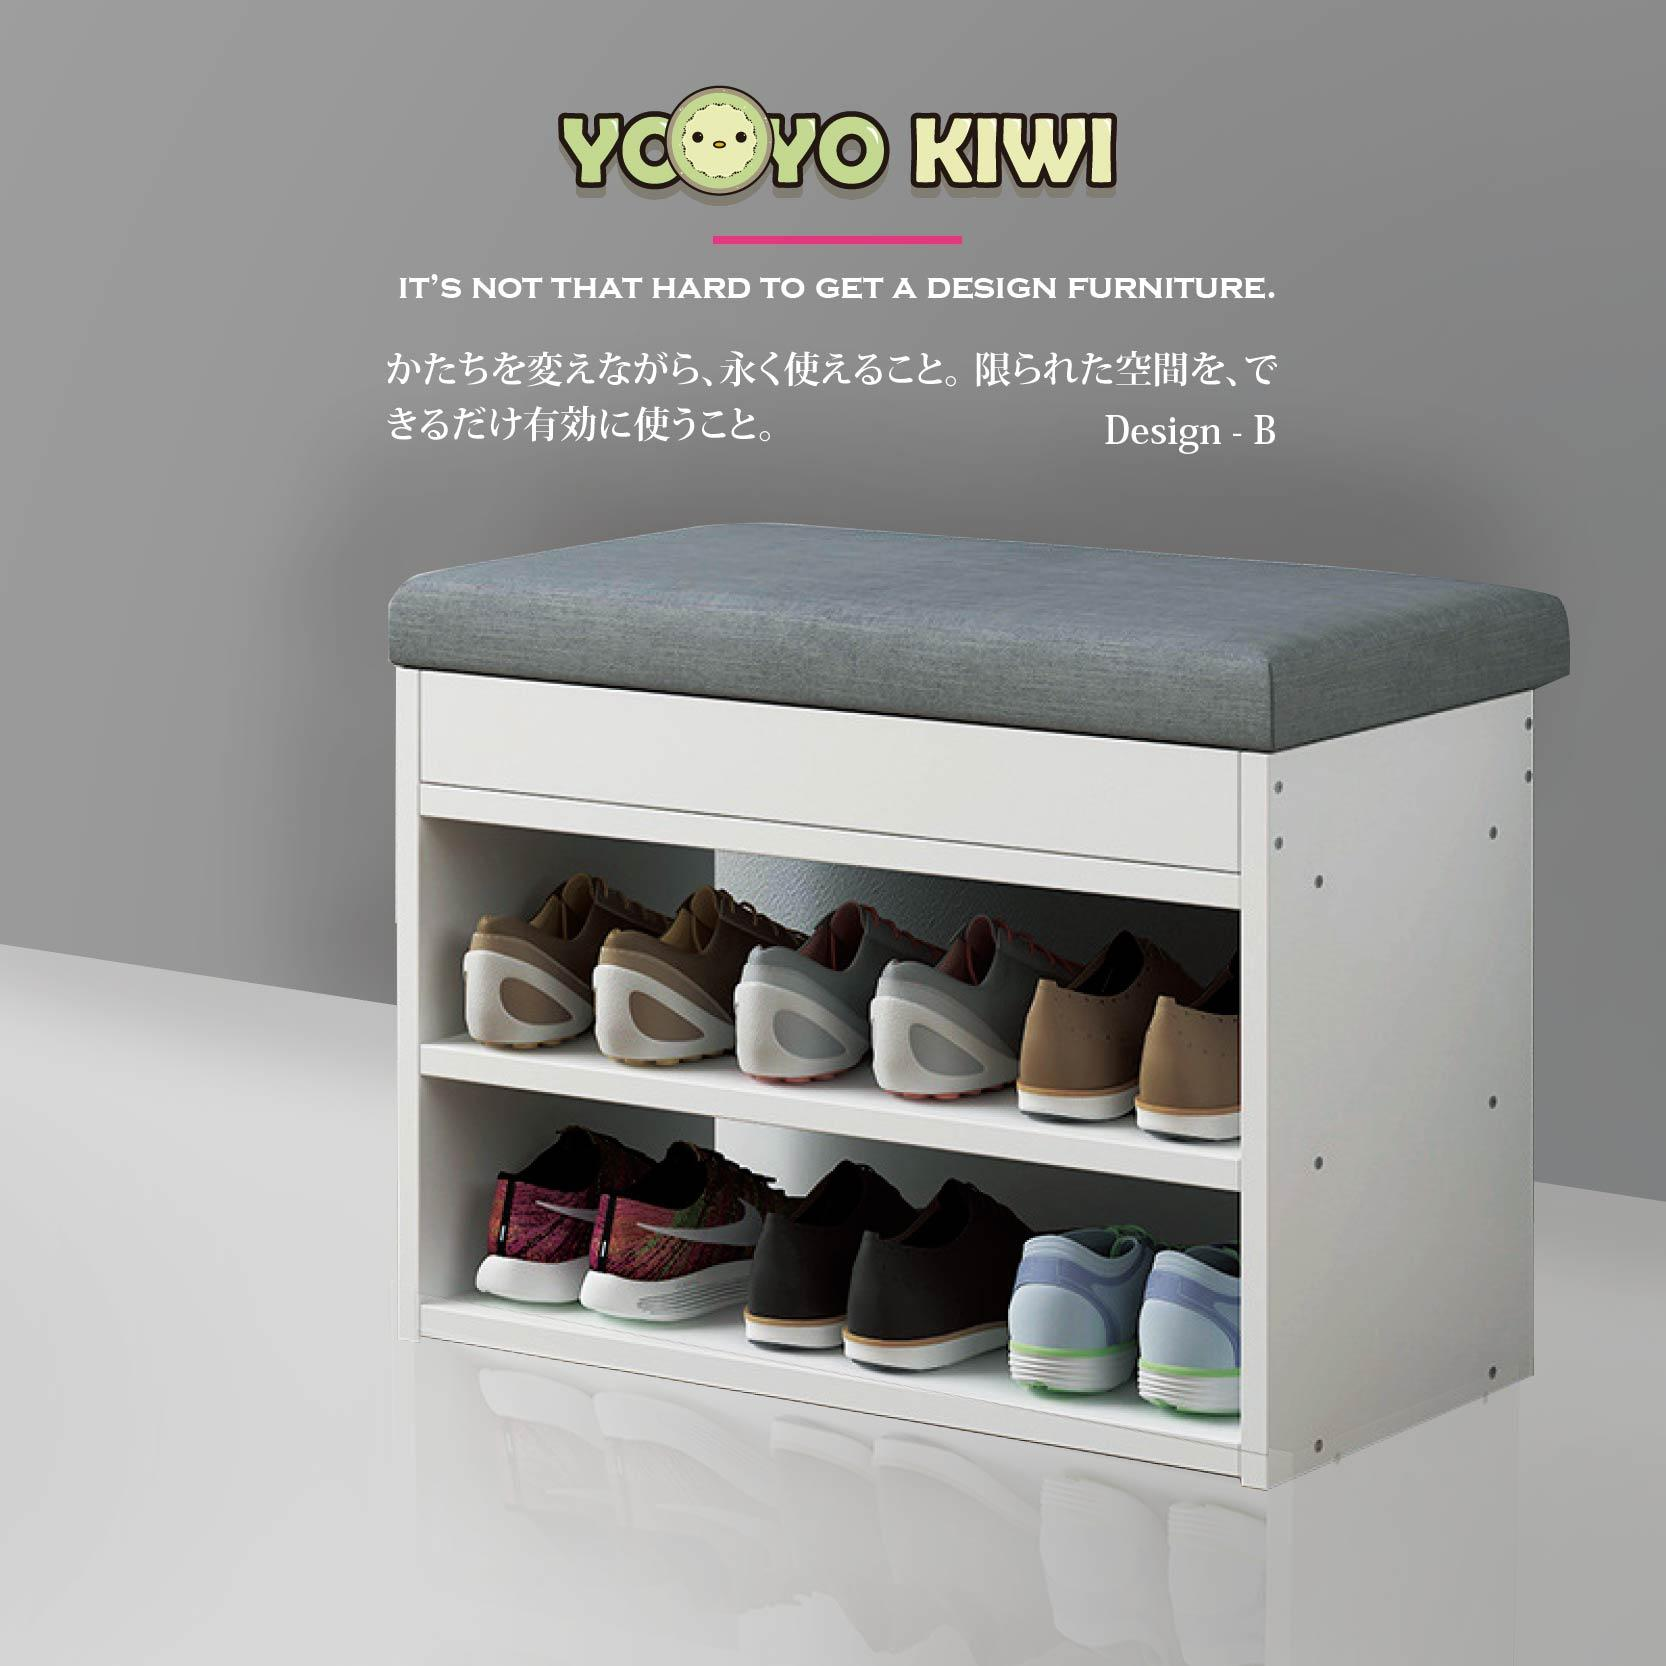 Shoe Rack / Shoe Storage Cabinet/ Shoe Organizer/Wooden Shoes Rack With Seat/Shoe Compartment